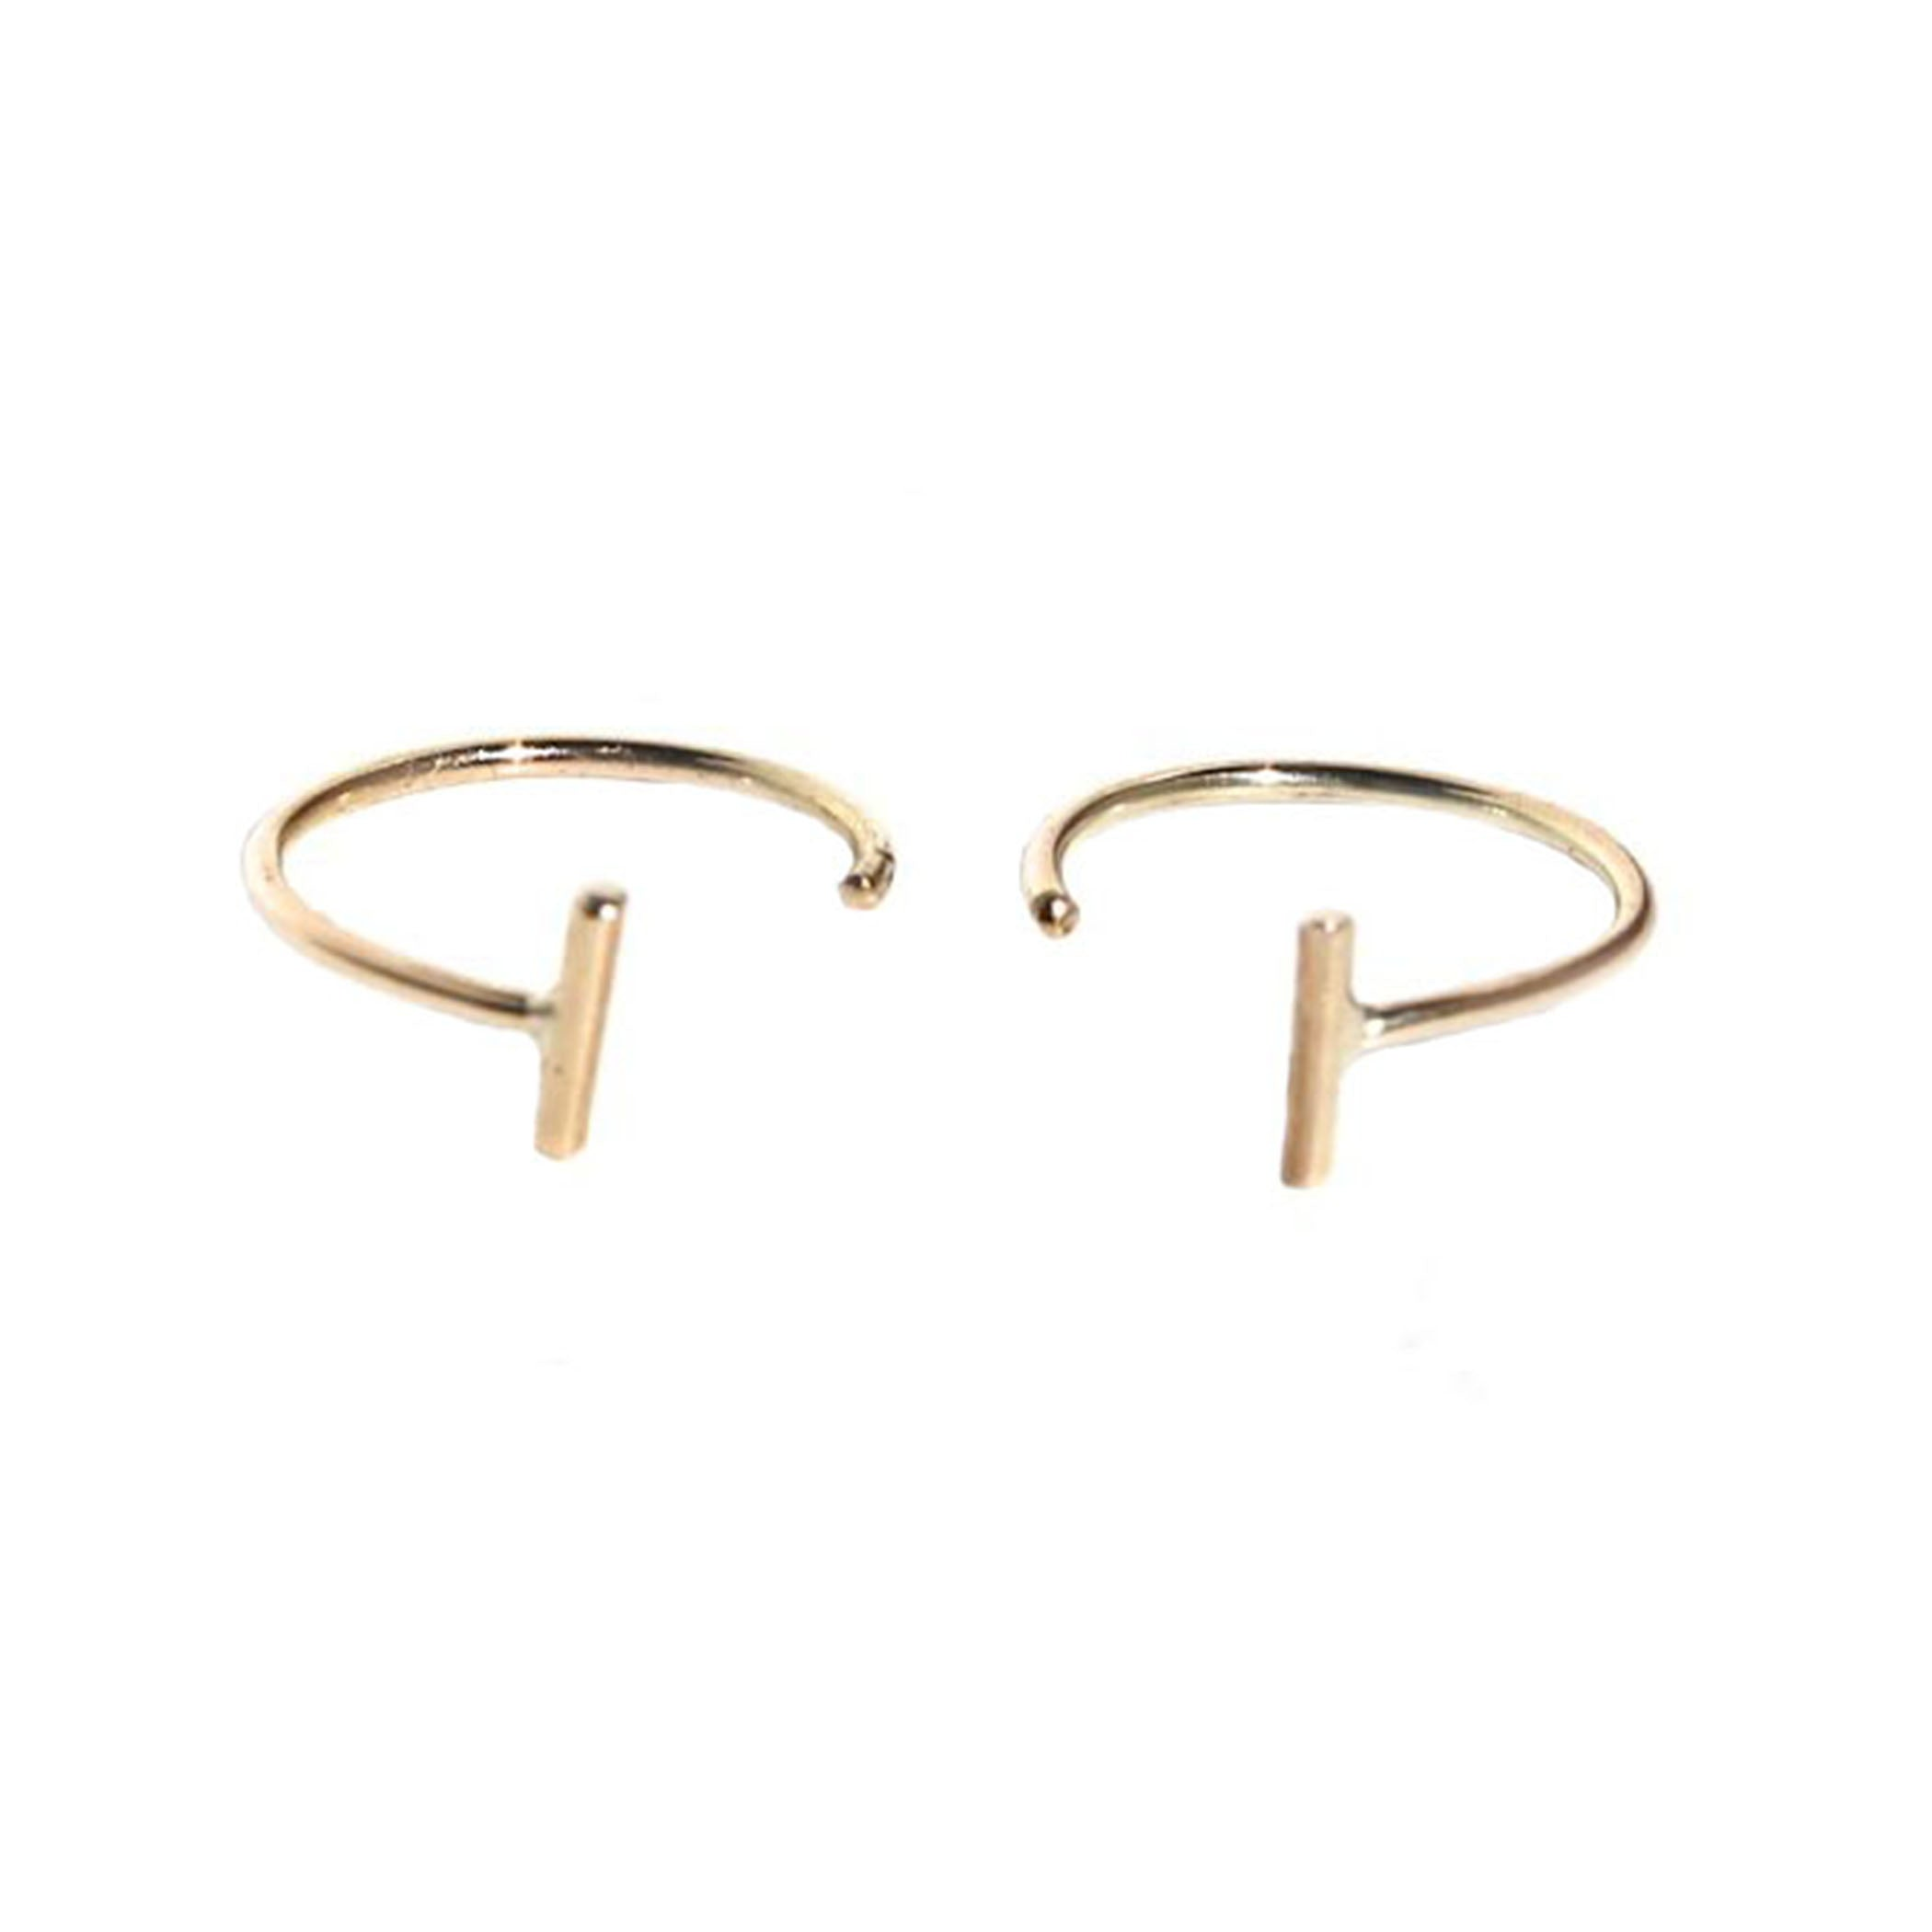 TINY STAPLE HOOPS